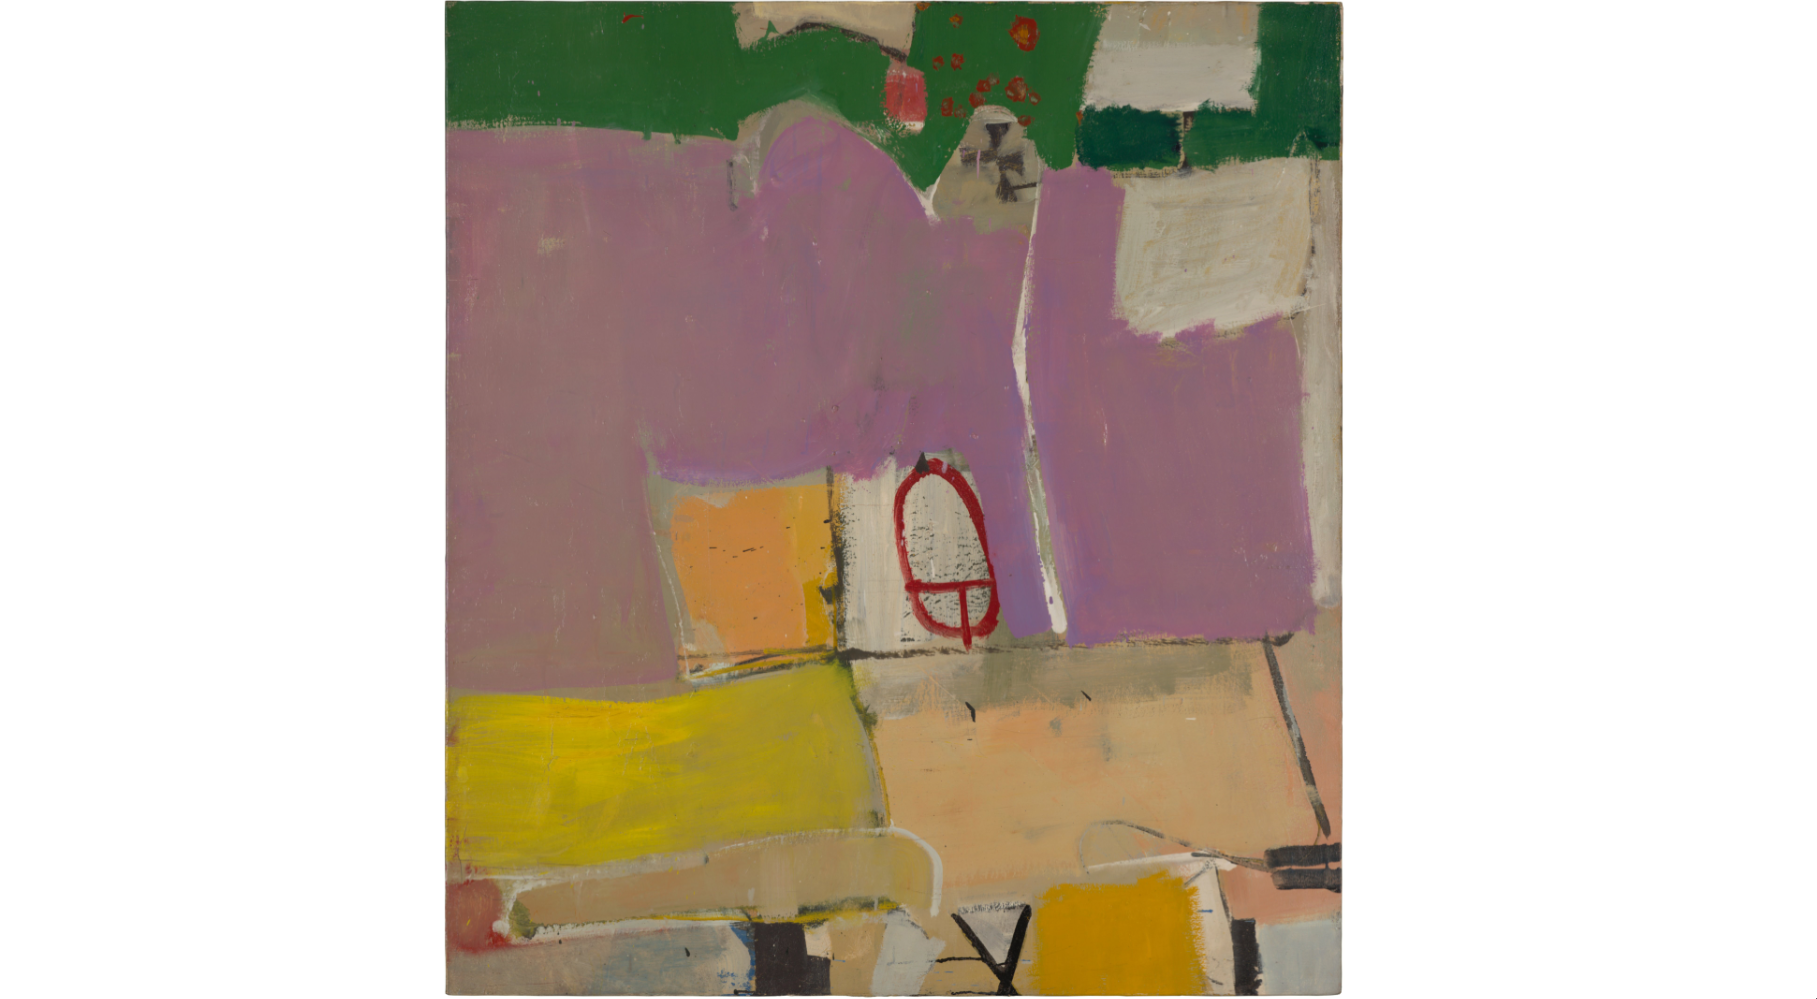 (Richard Diebenkorn: 'Albuquerque #4', 1951. © The Richard Diebenkorn Foundation )